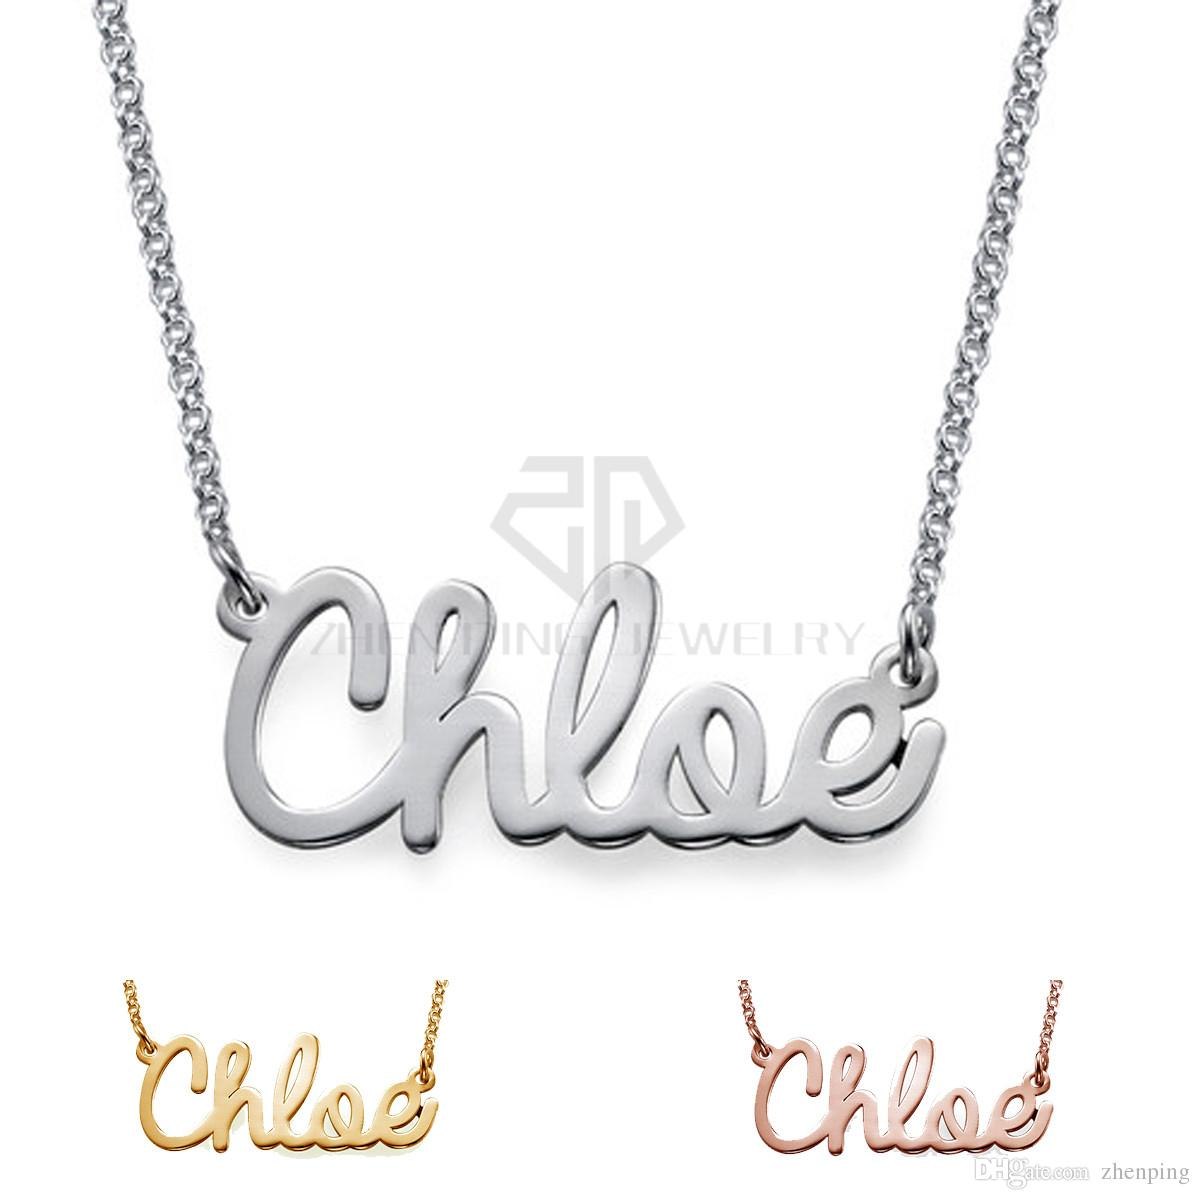 Free Shipping 316L stainless steel high quality Personalize Cursive name necklace Customized Nameplate Necklace with black bag